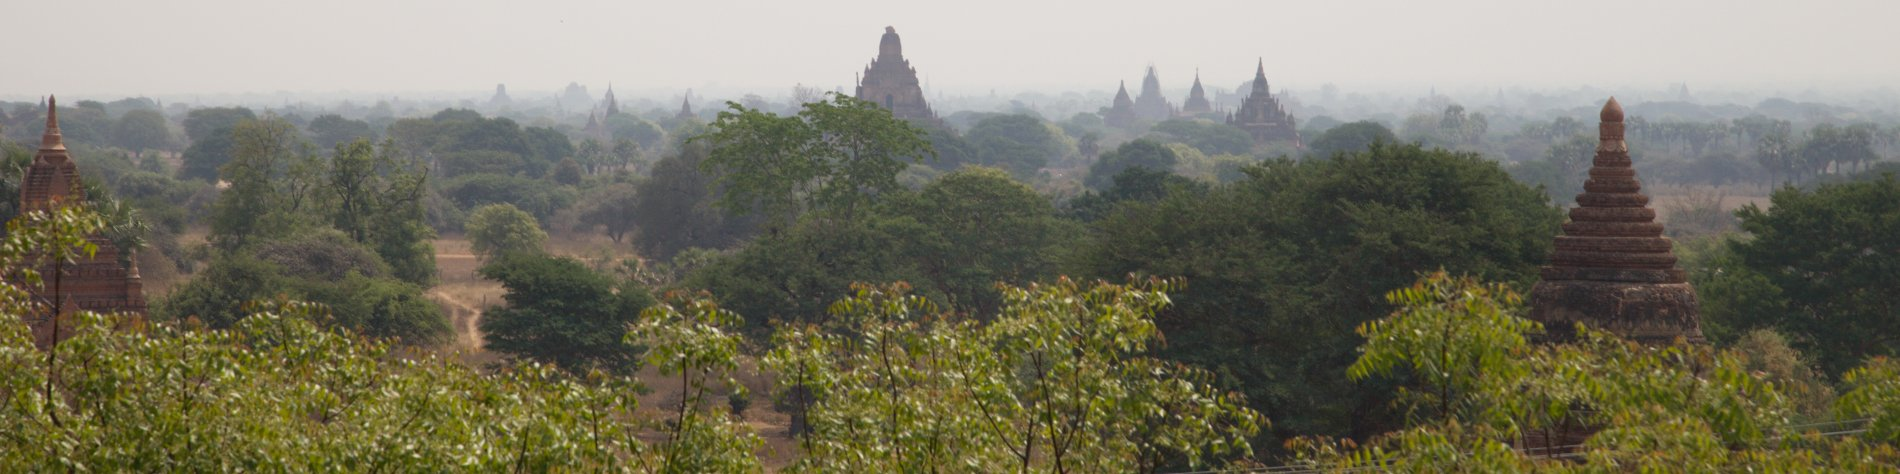 Bagan_278.jpg-commment